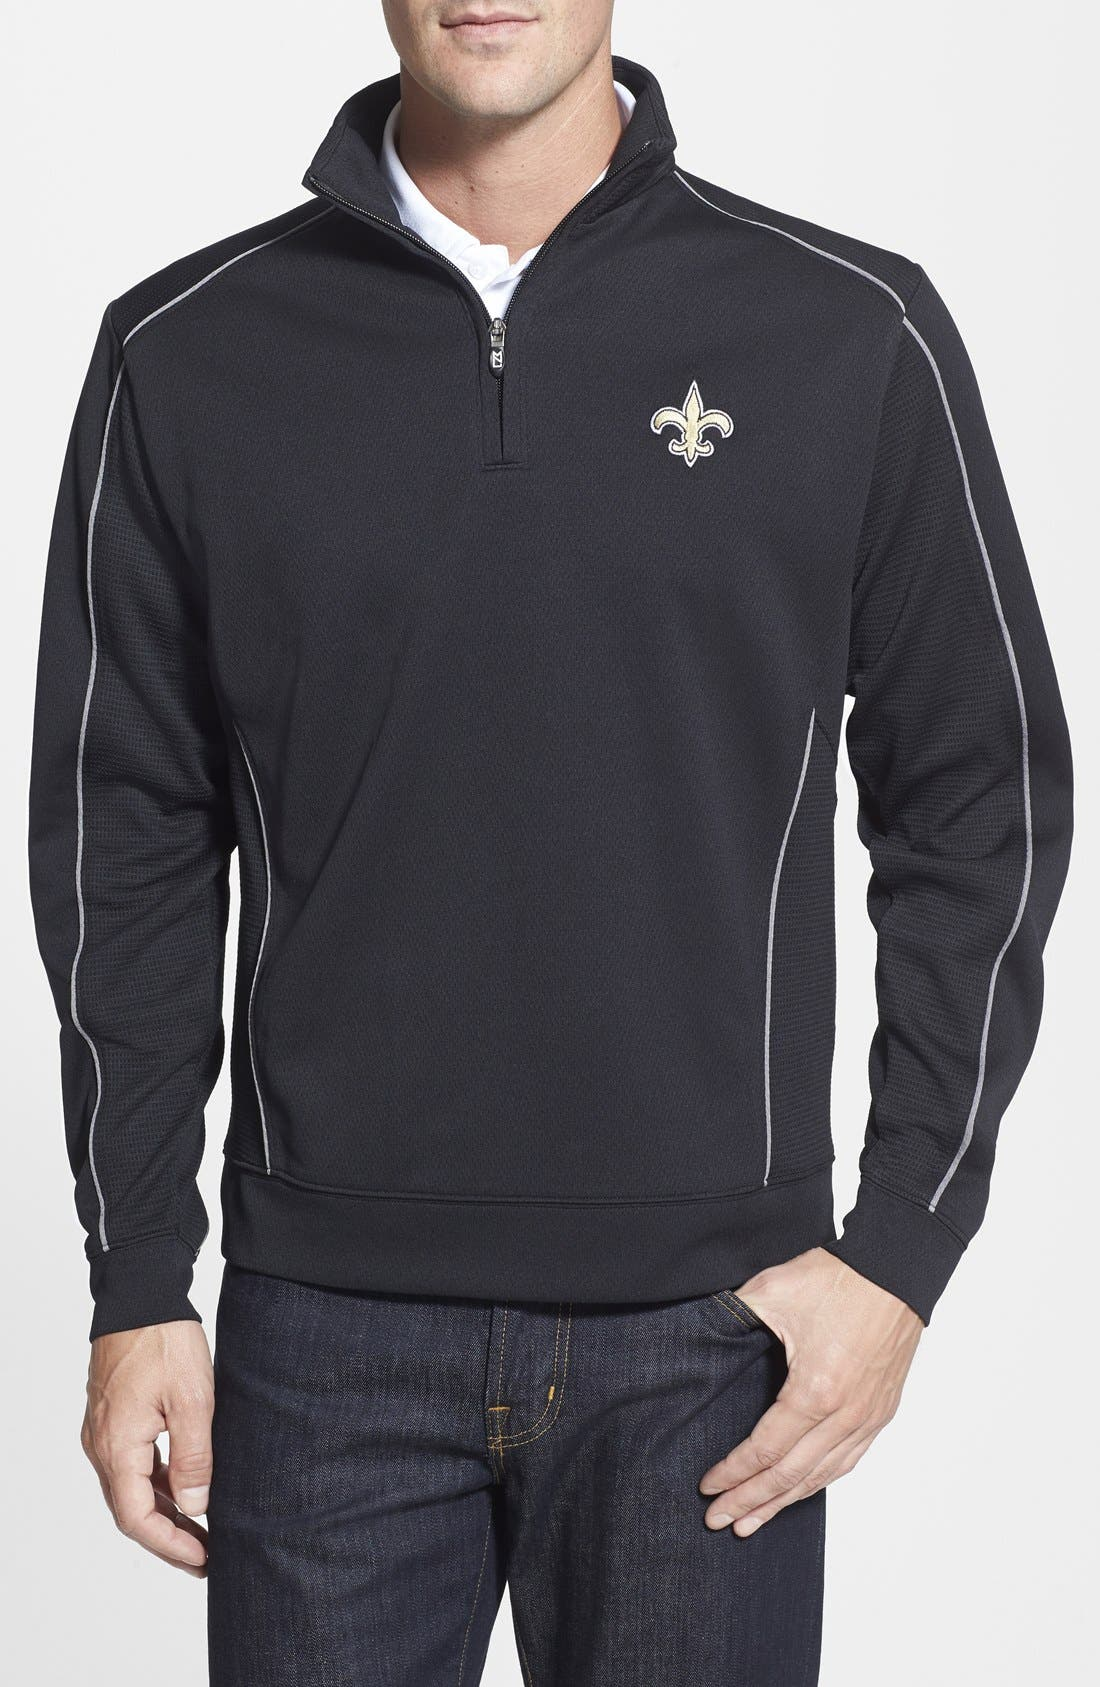 Alternate Image 1 Selected - Cutter & Buck New Orleans Saints - Edge DryTec Moisture Wicking Half Zip Pullover